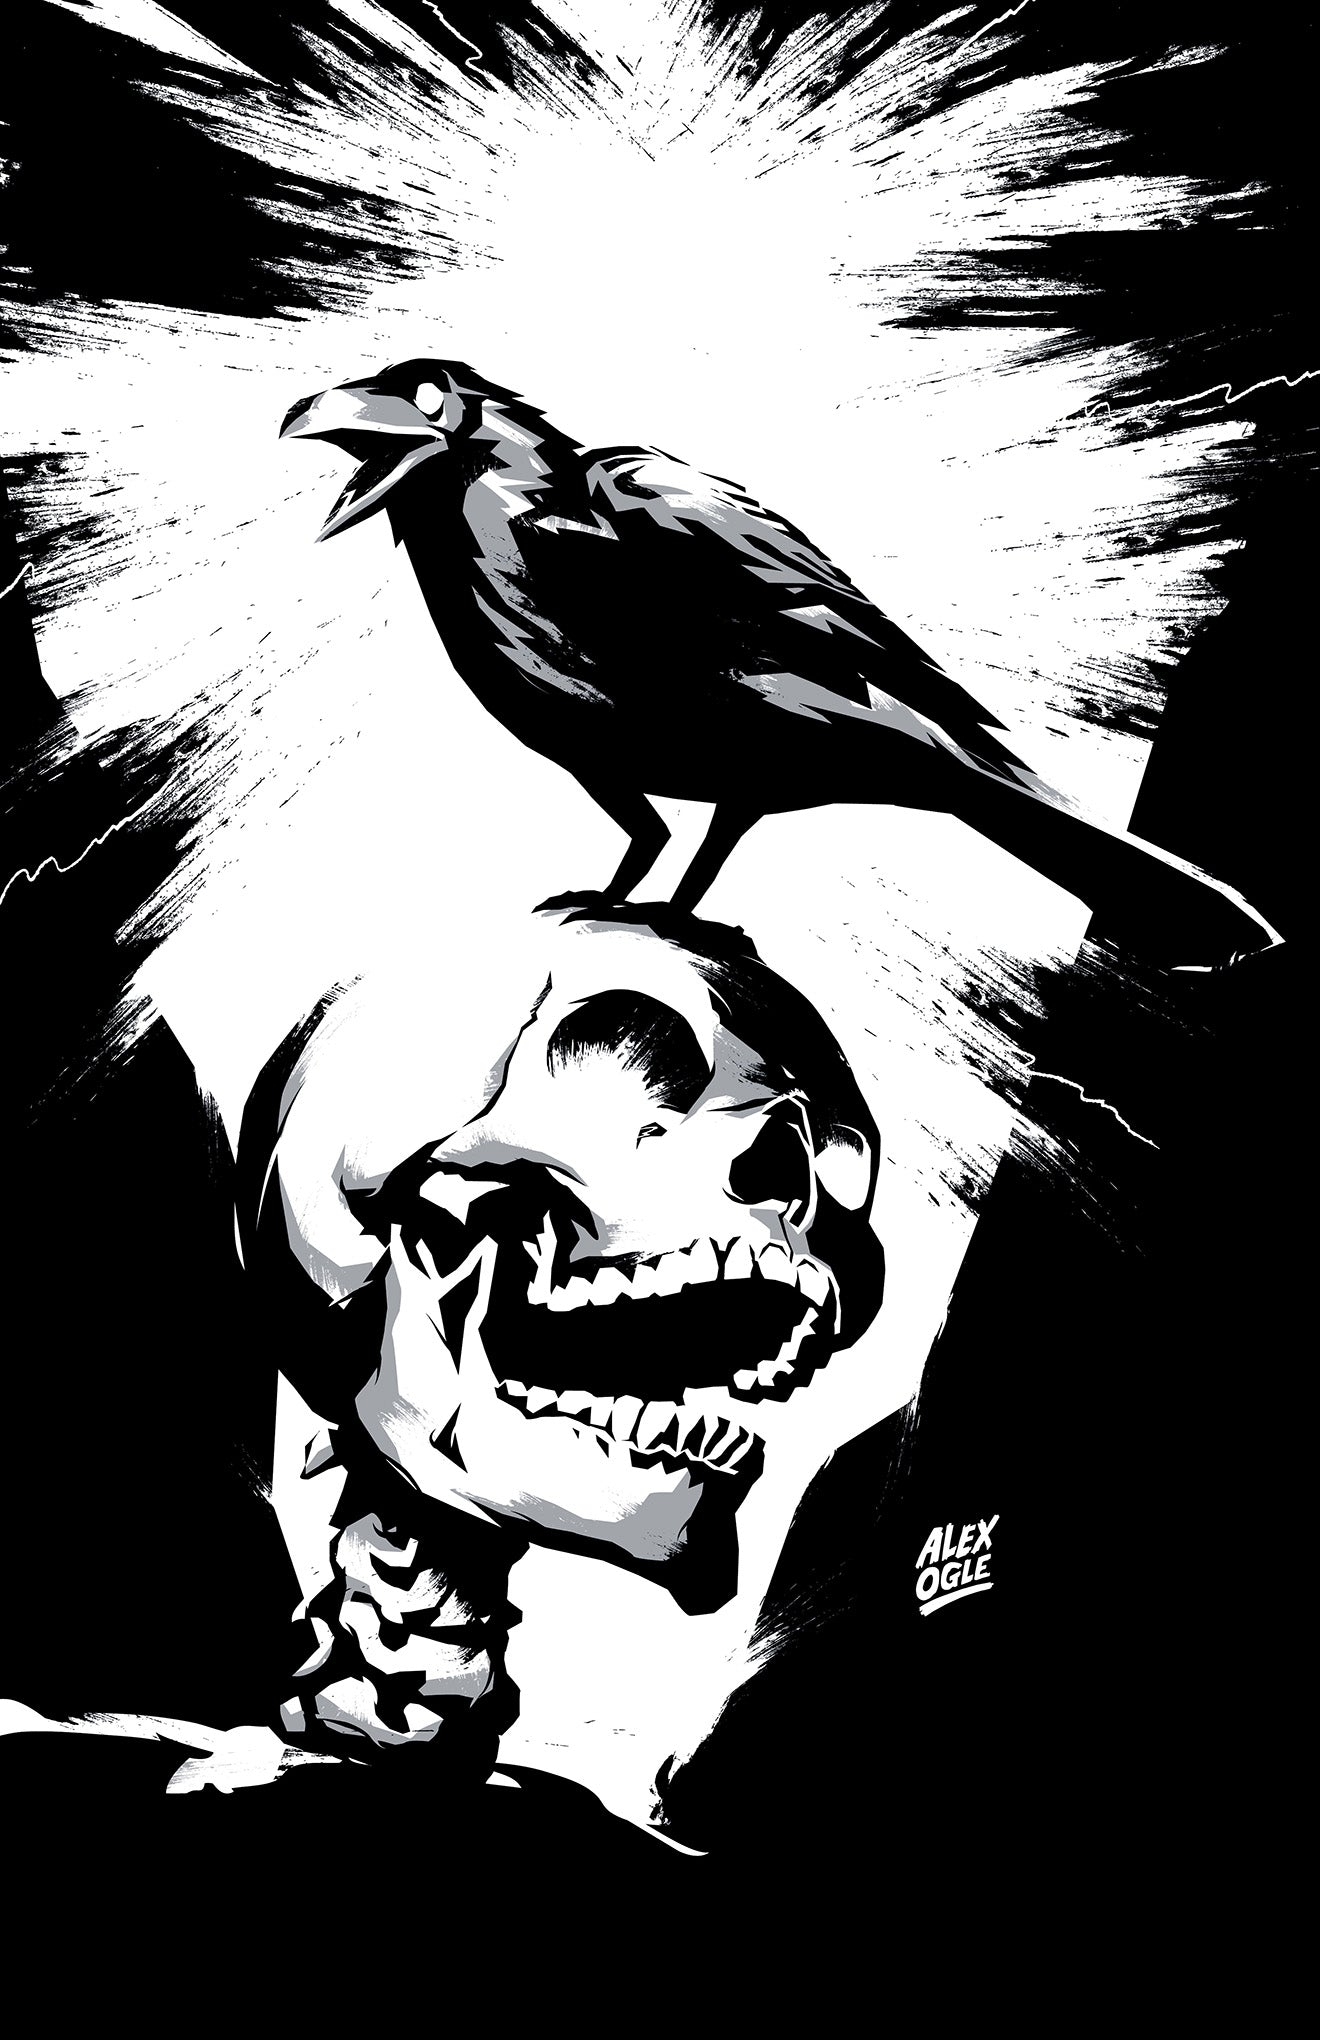 Skull and Raven